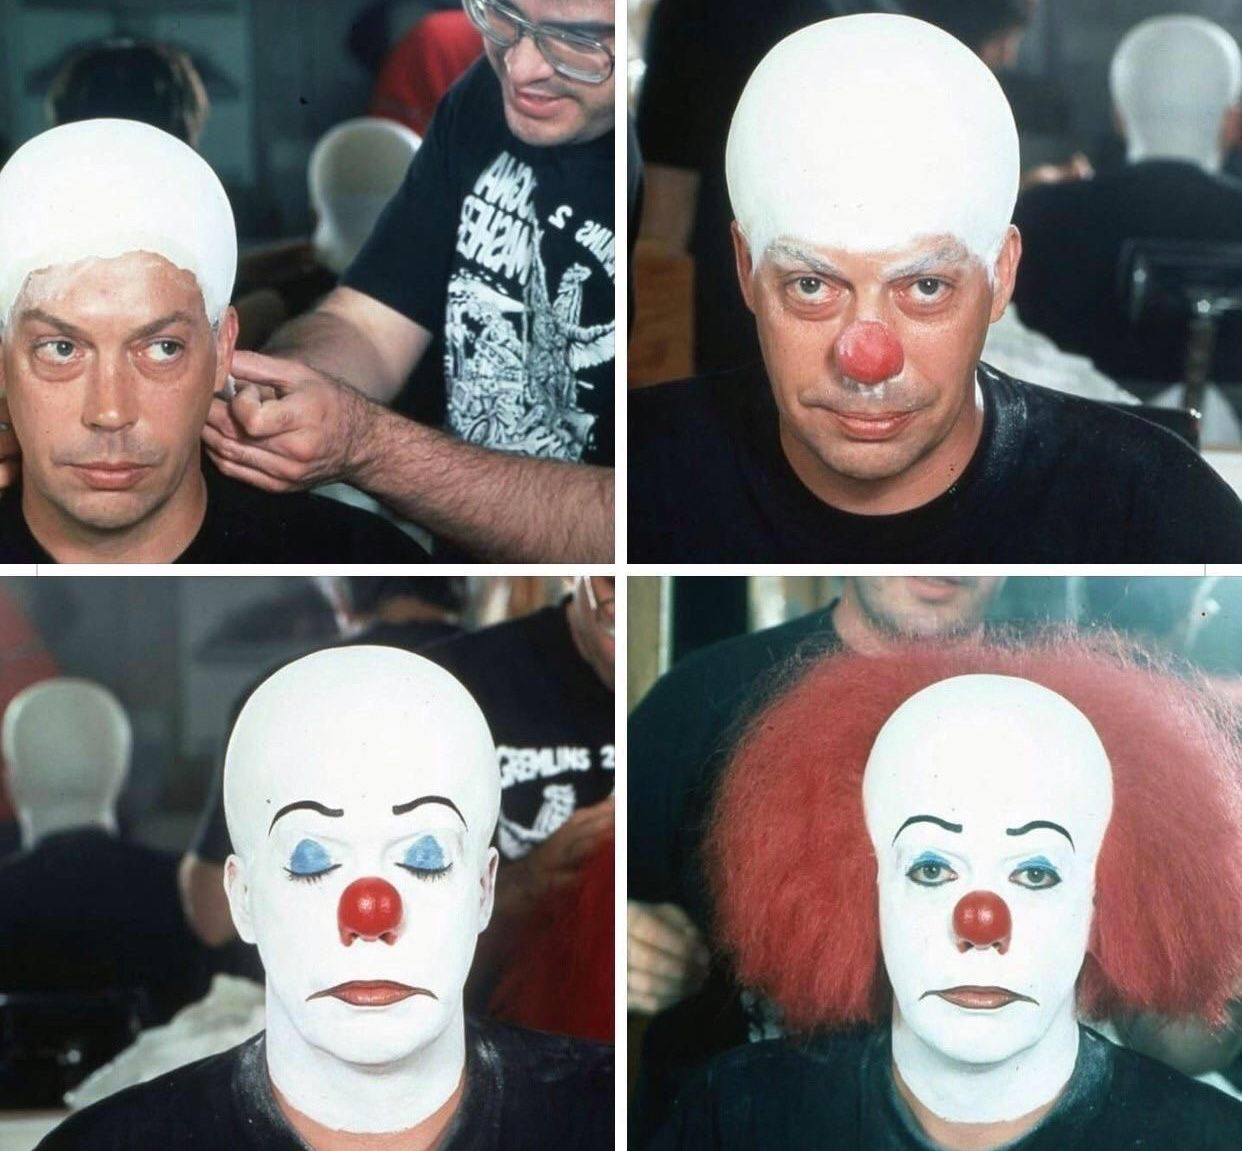 da4acdc997ec8984a0b89c134c10753c 40 Facts You Probably Didn't Know About Tim Curry